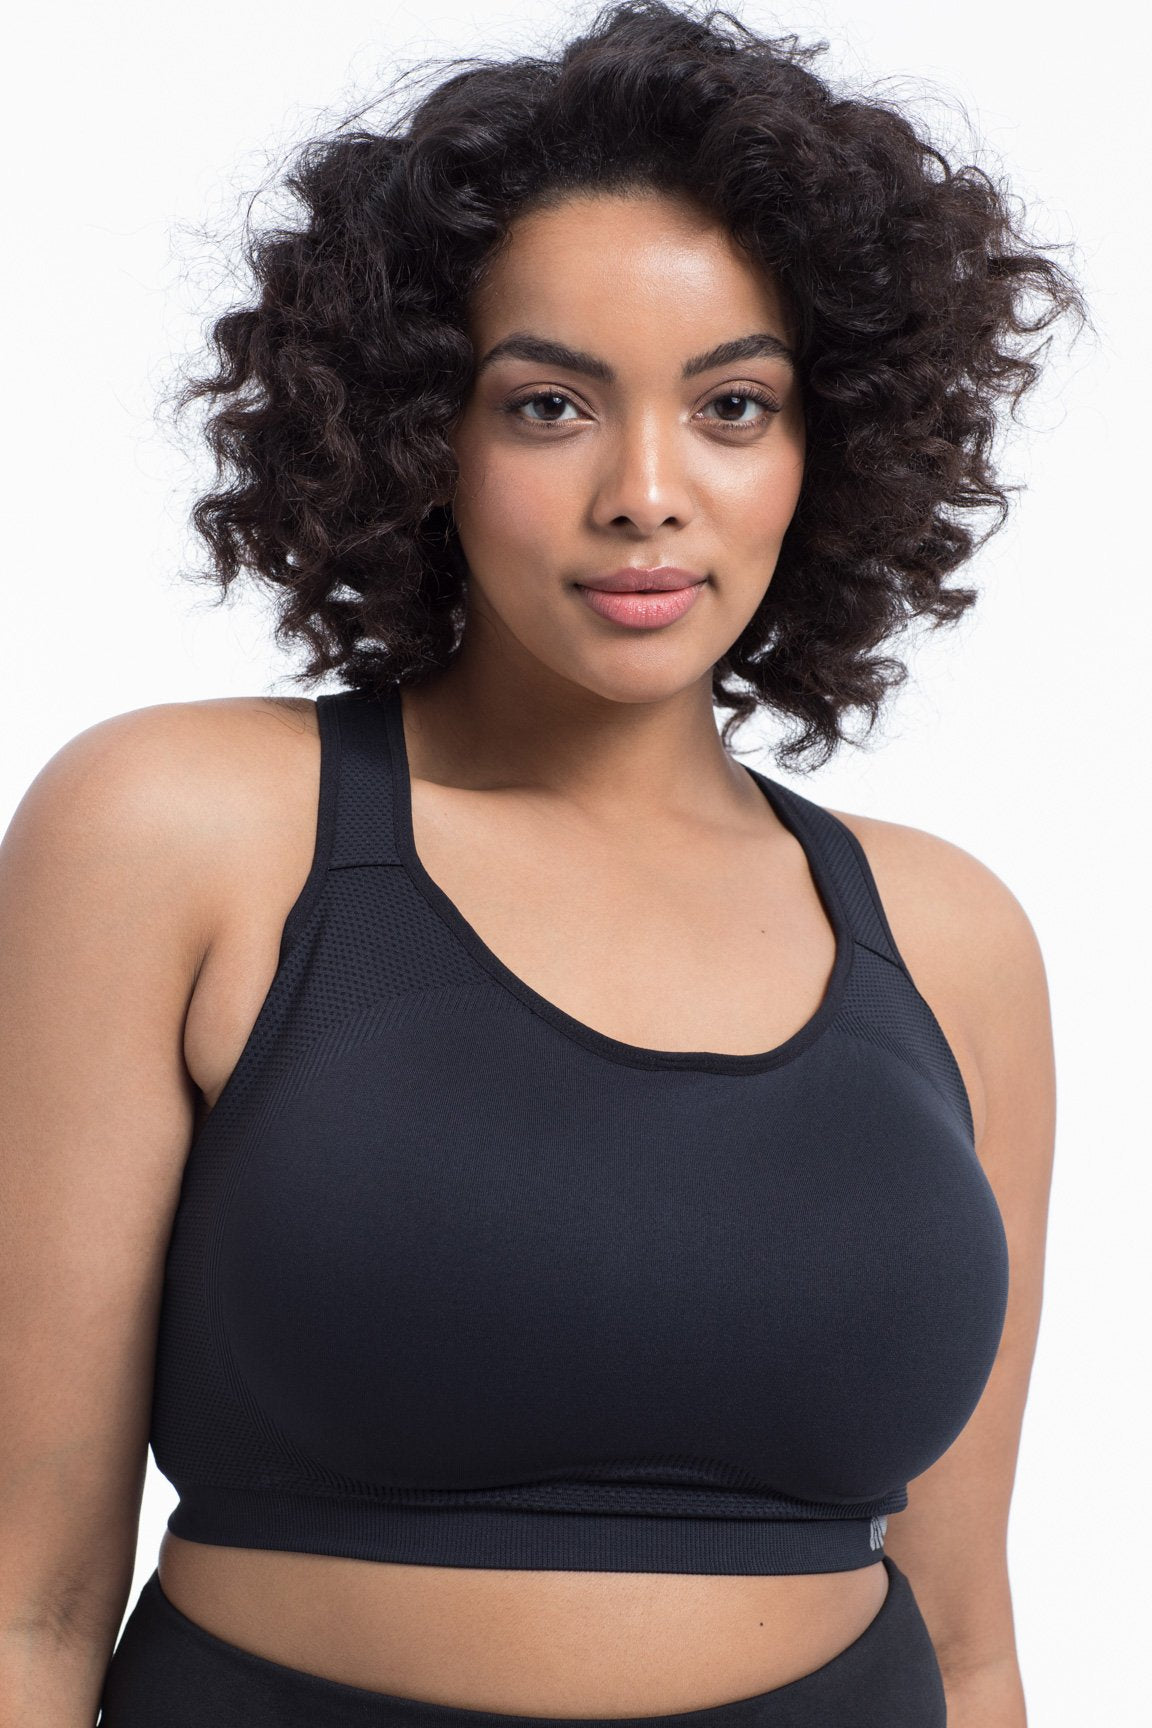 eb01cdf93a859 Seamless Sports Bra (Plus Size).  38.99  55.00 Available in 2 Colors